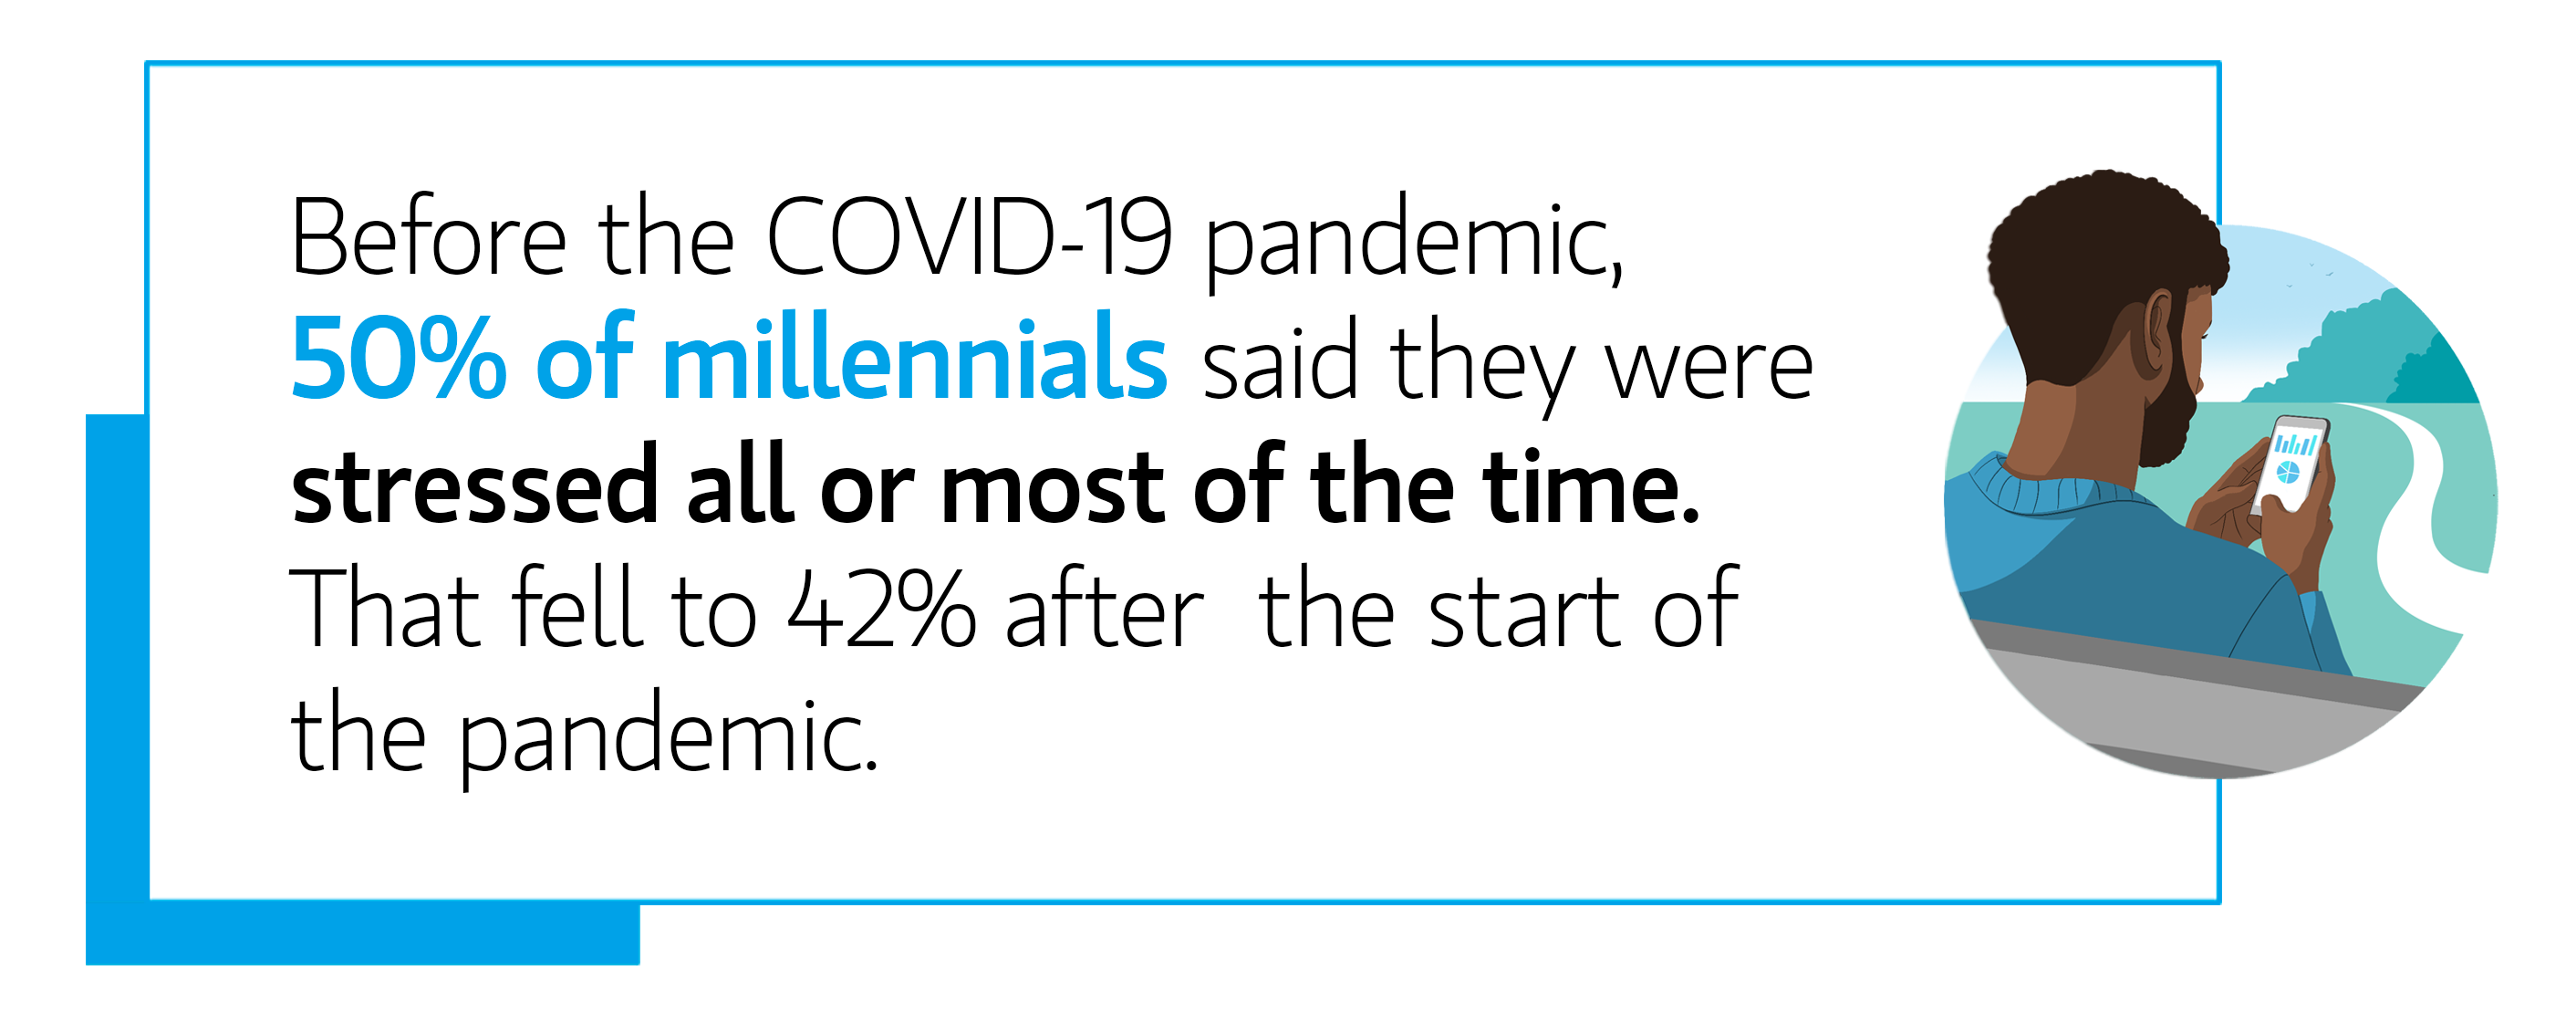 Quote: Before the COVID 19 pandemic, 50% of millennials said they were stressed all or most of the time.  That fell to 42% after the start of the pandemic.